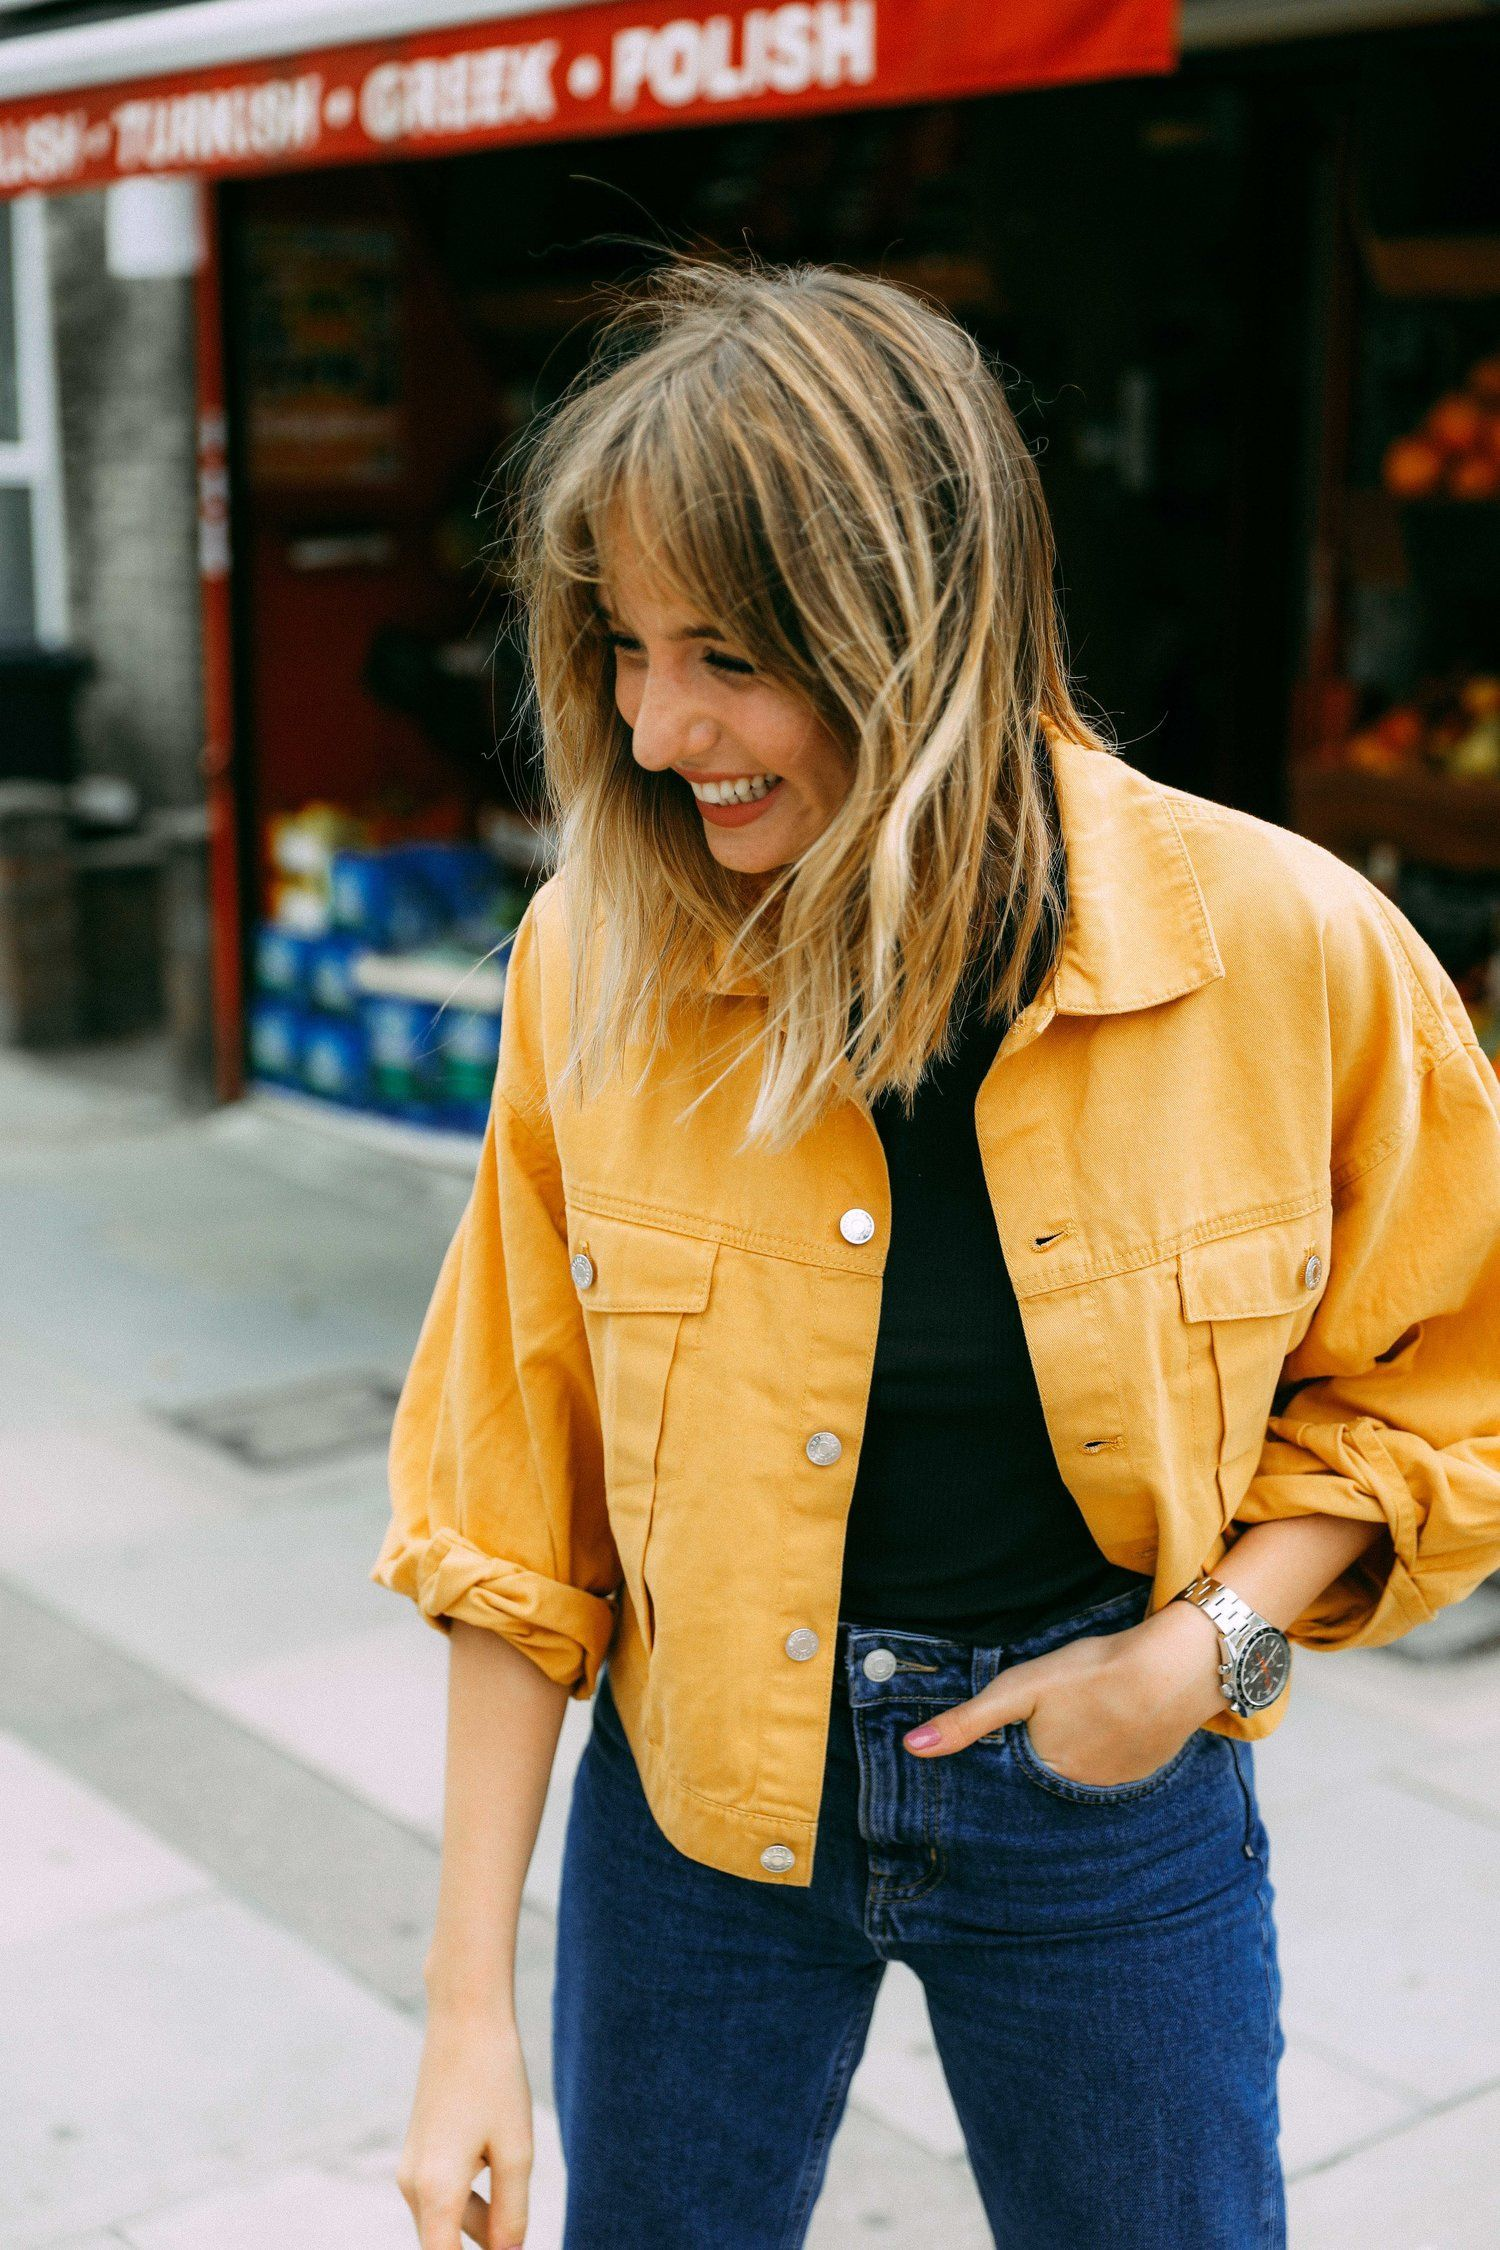 image result for yellow jean jacket outfit fashion pinterest